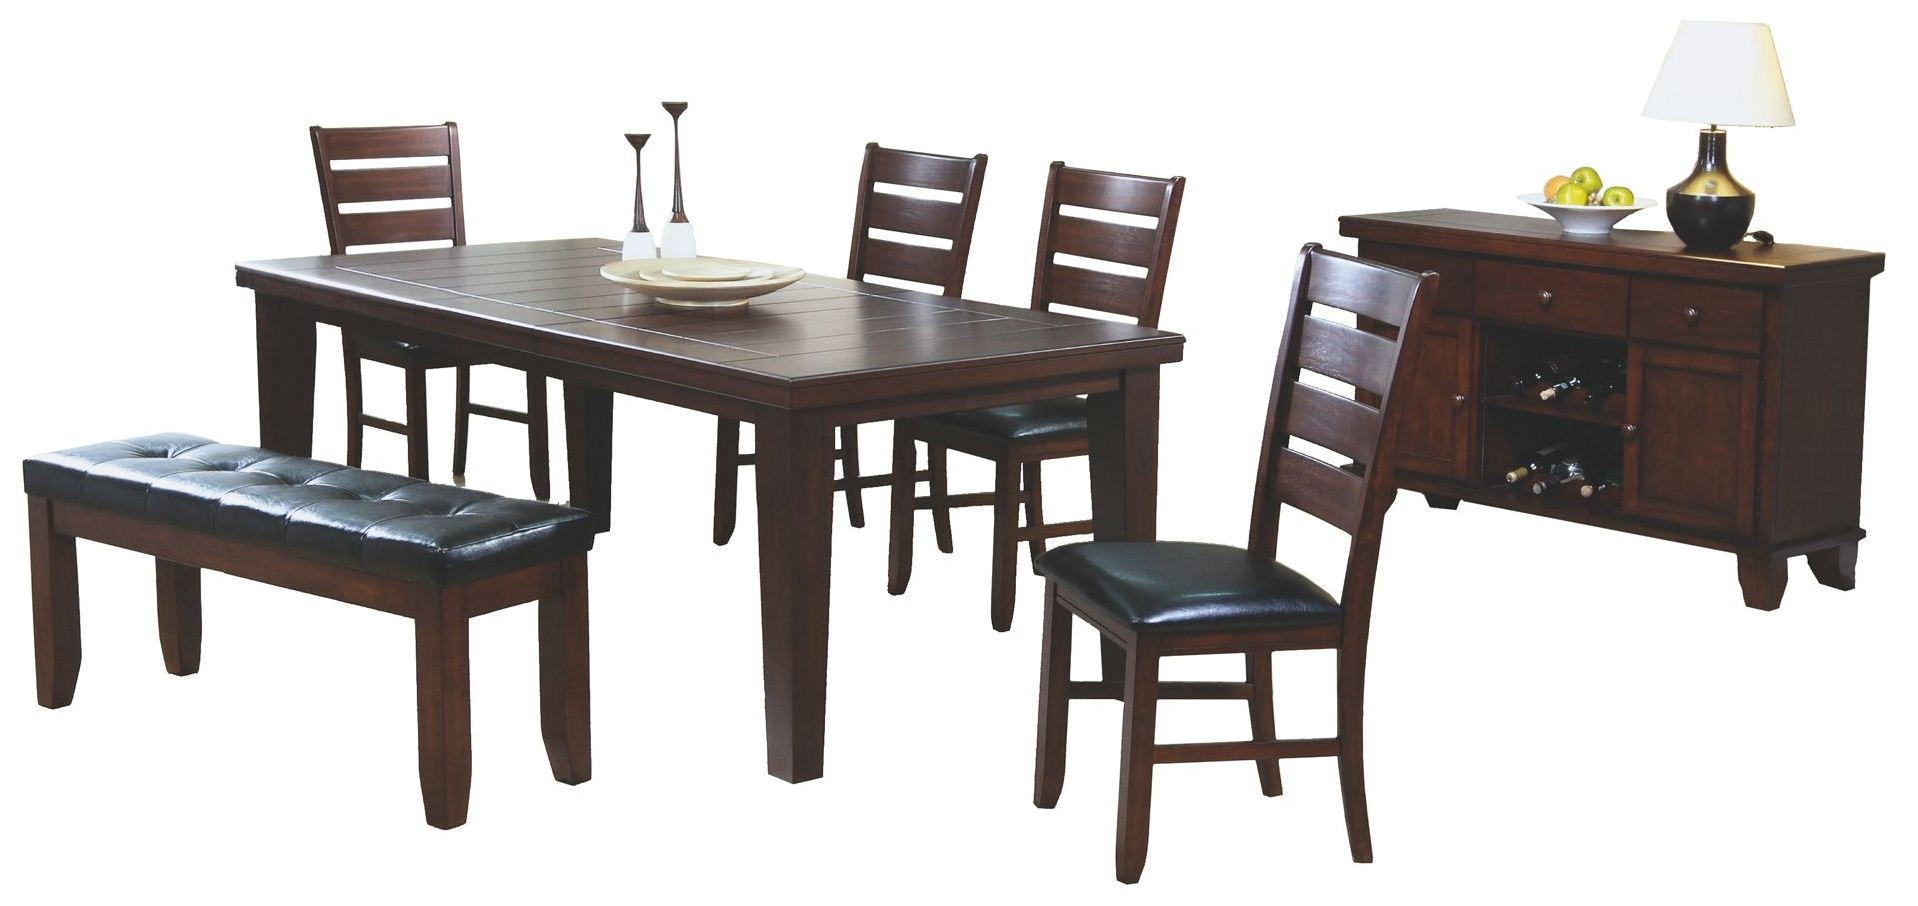 Dark oak dining table from monarch 1830 coleman furniture for Dark oak dining table